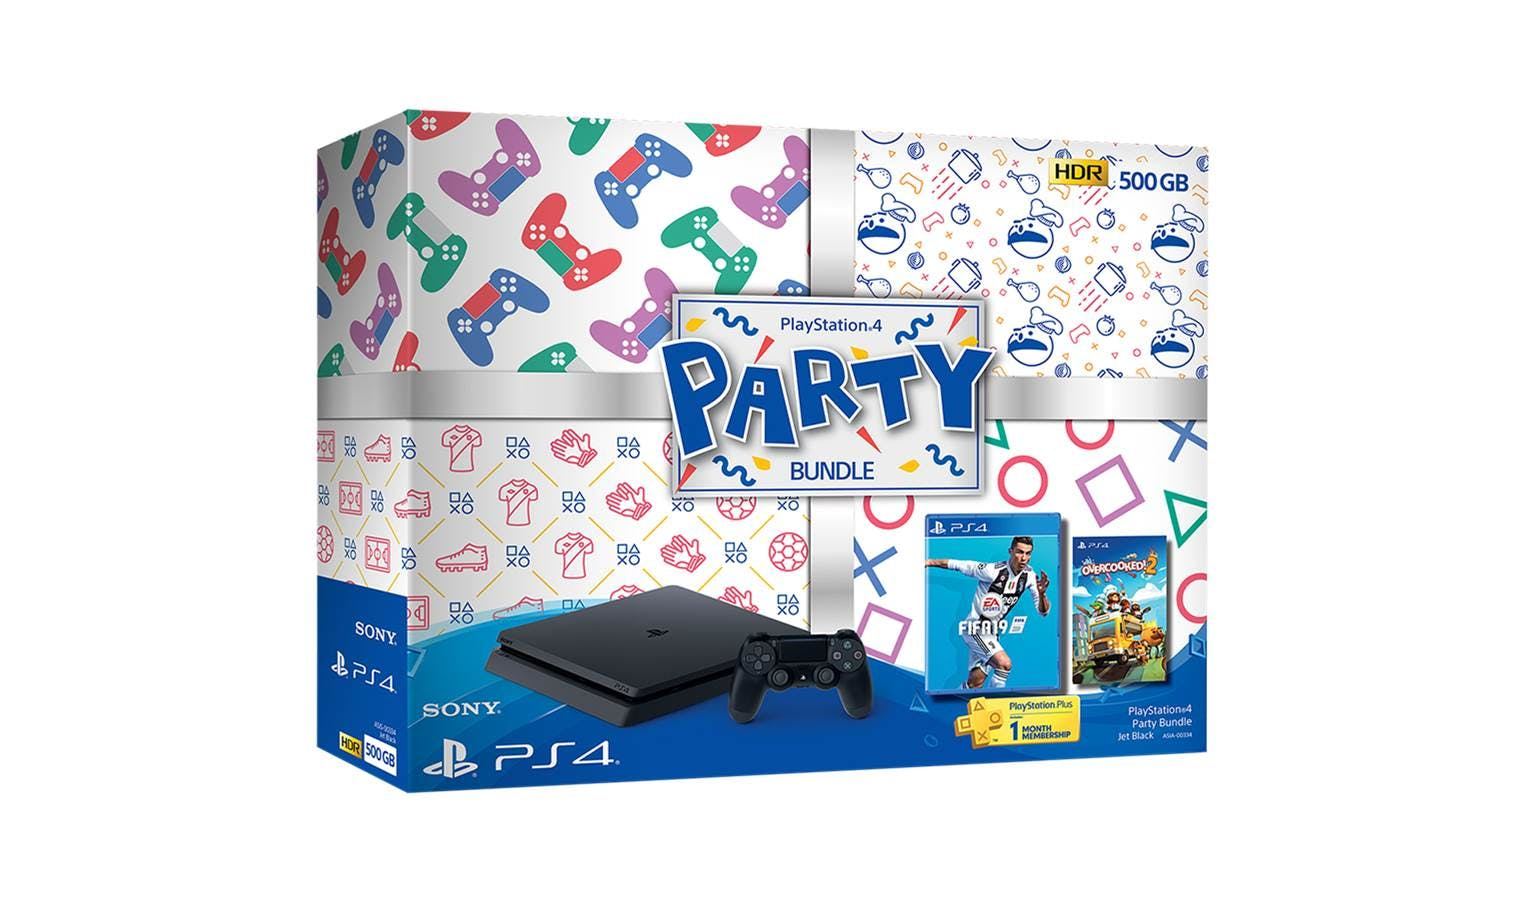 Ps4 Party Bundle Unique Birthday Party Ideas And Themes